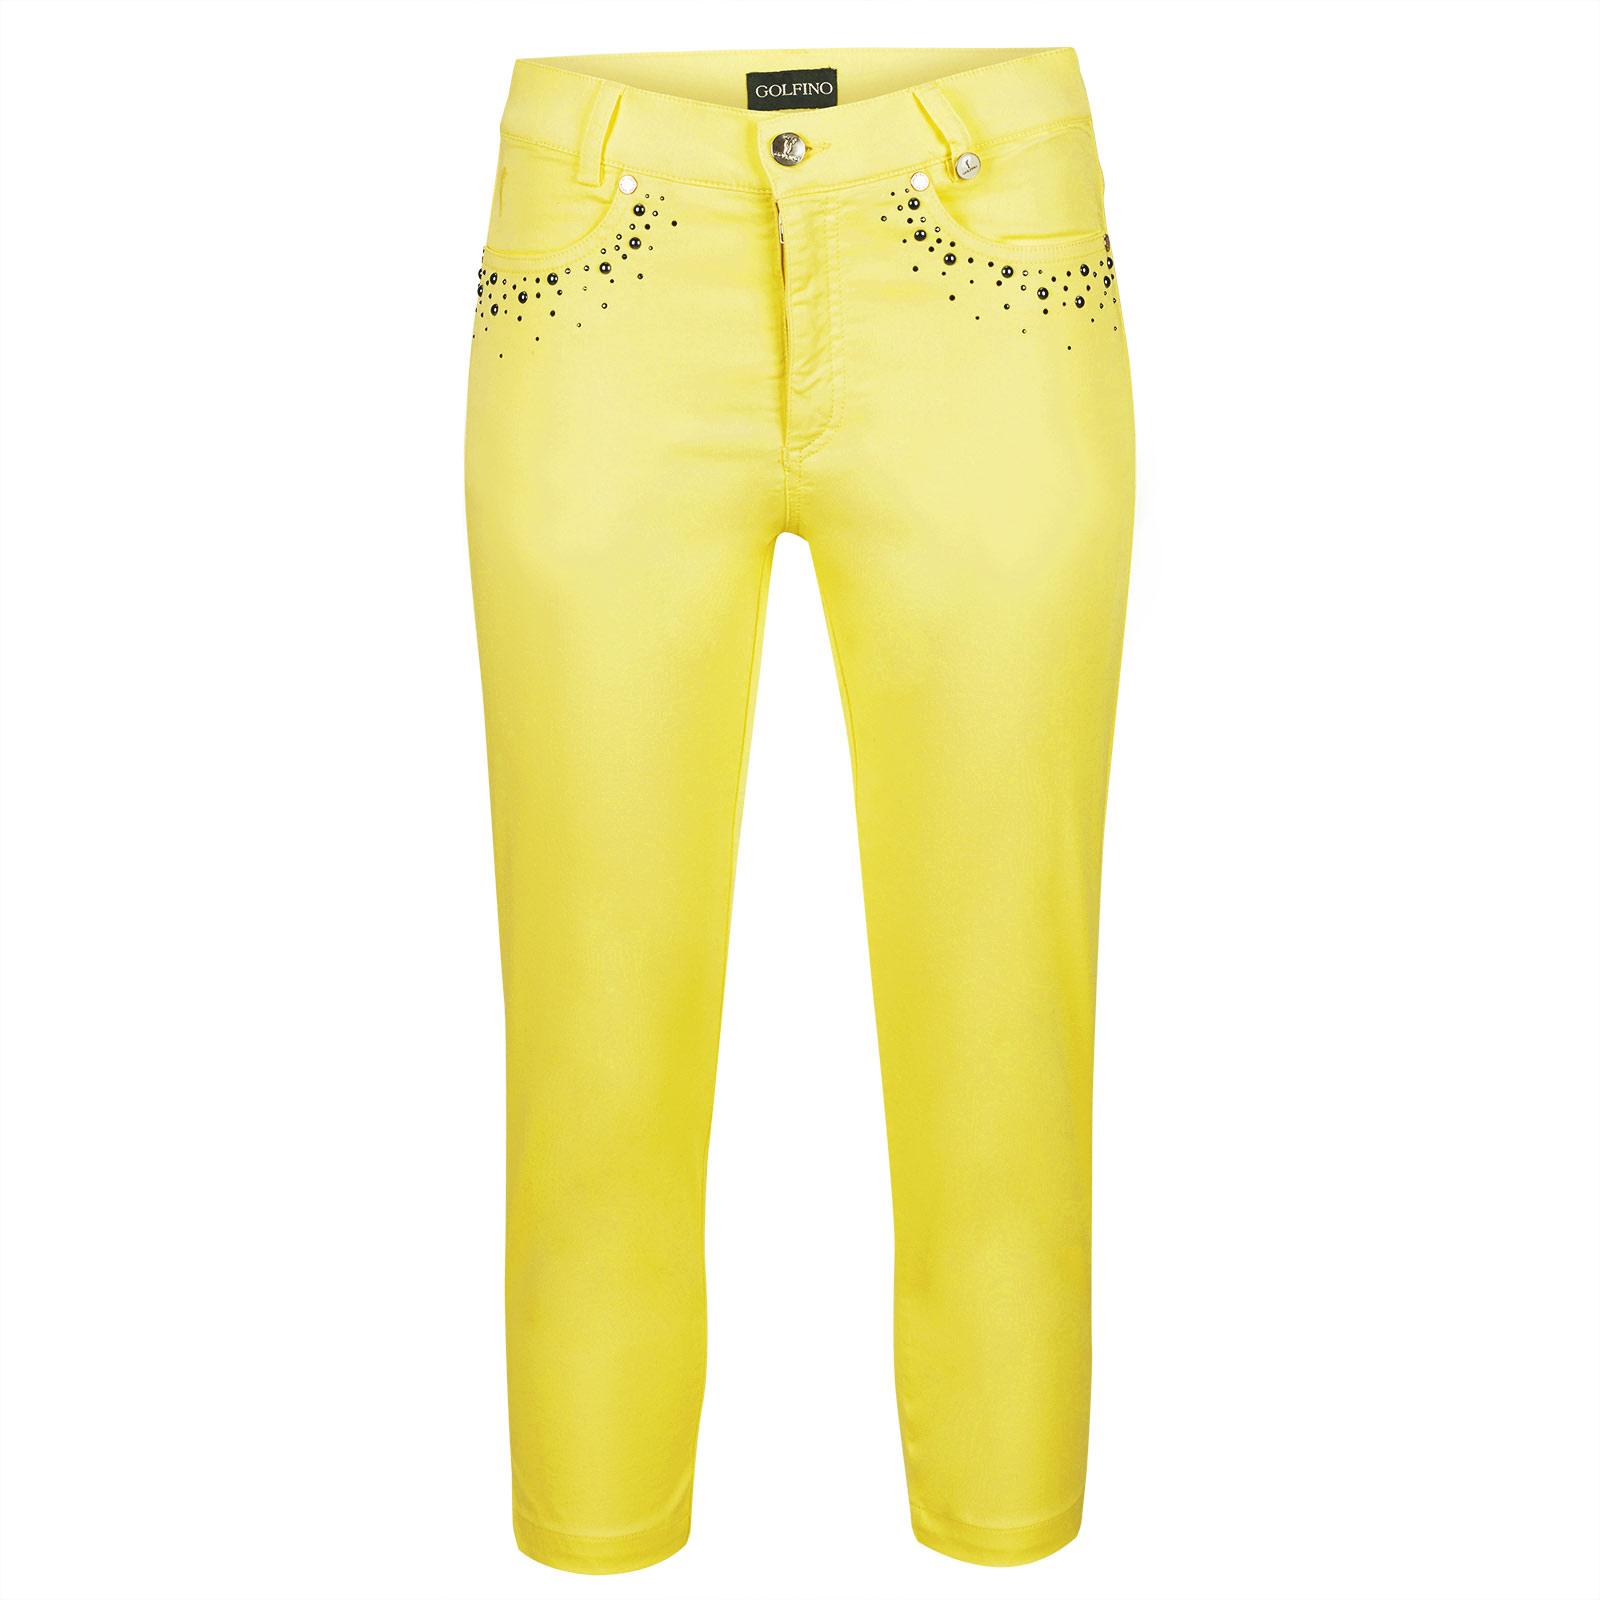 Ladies' Golf Capris made from high-quality cotton blend